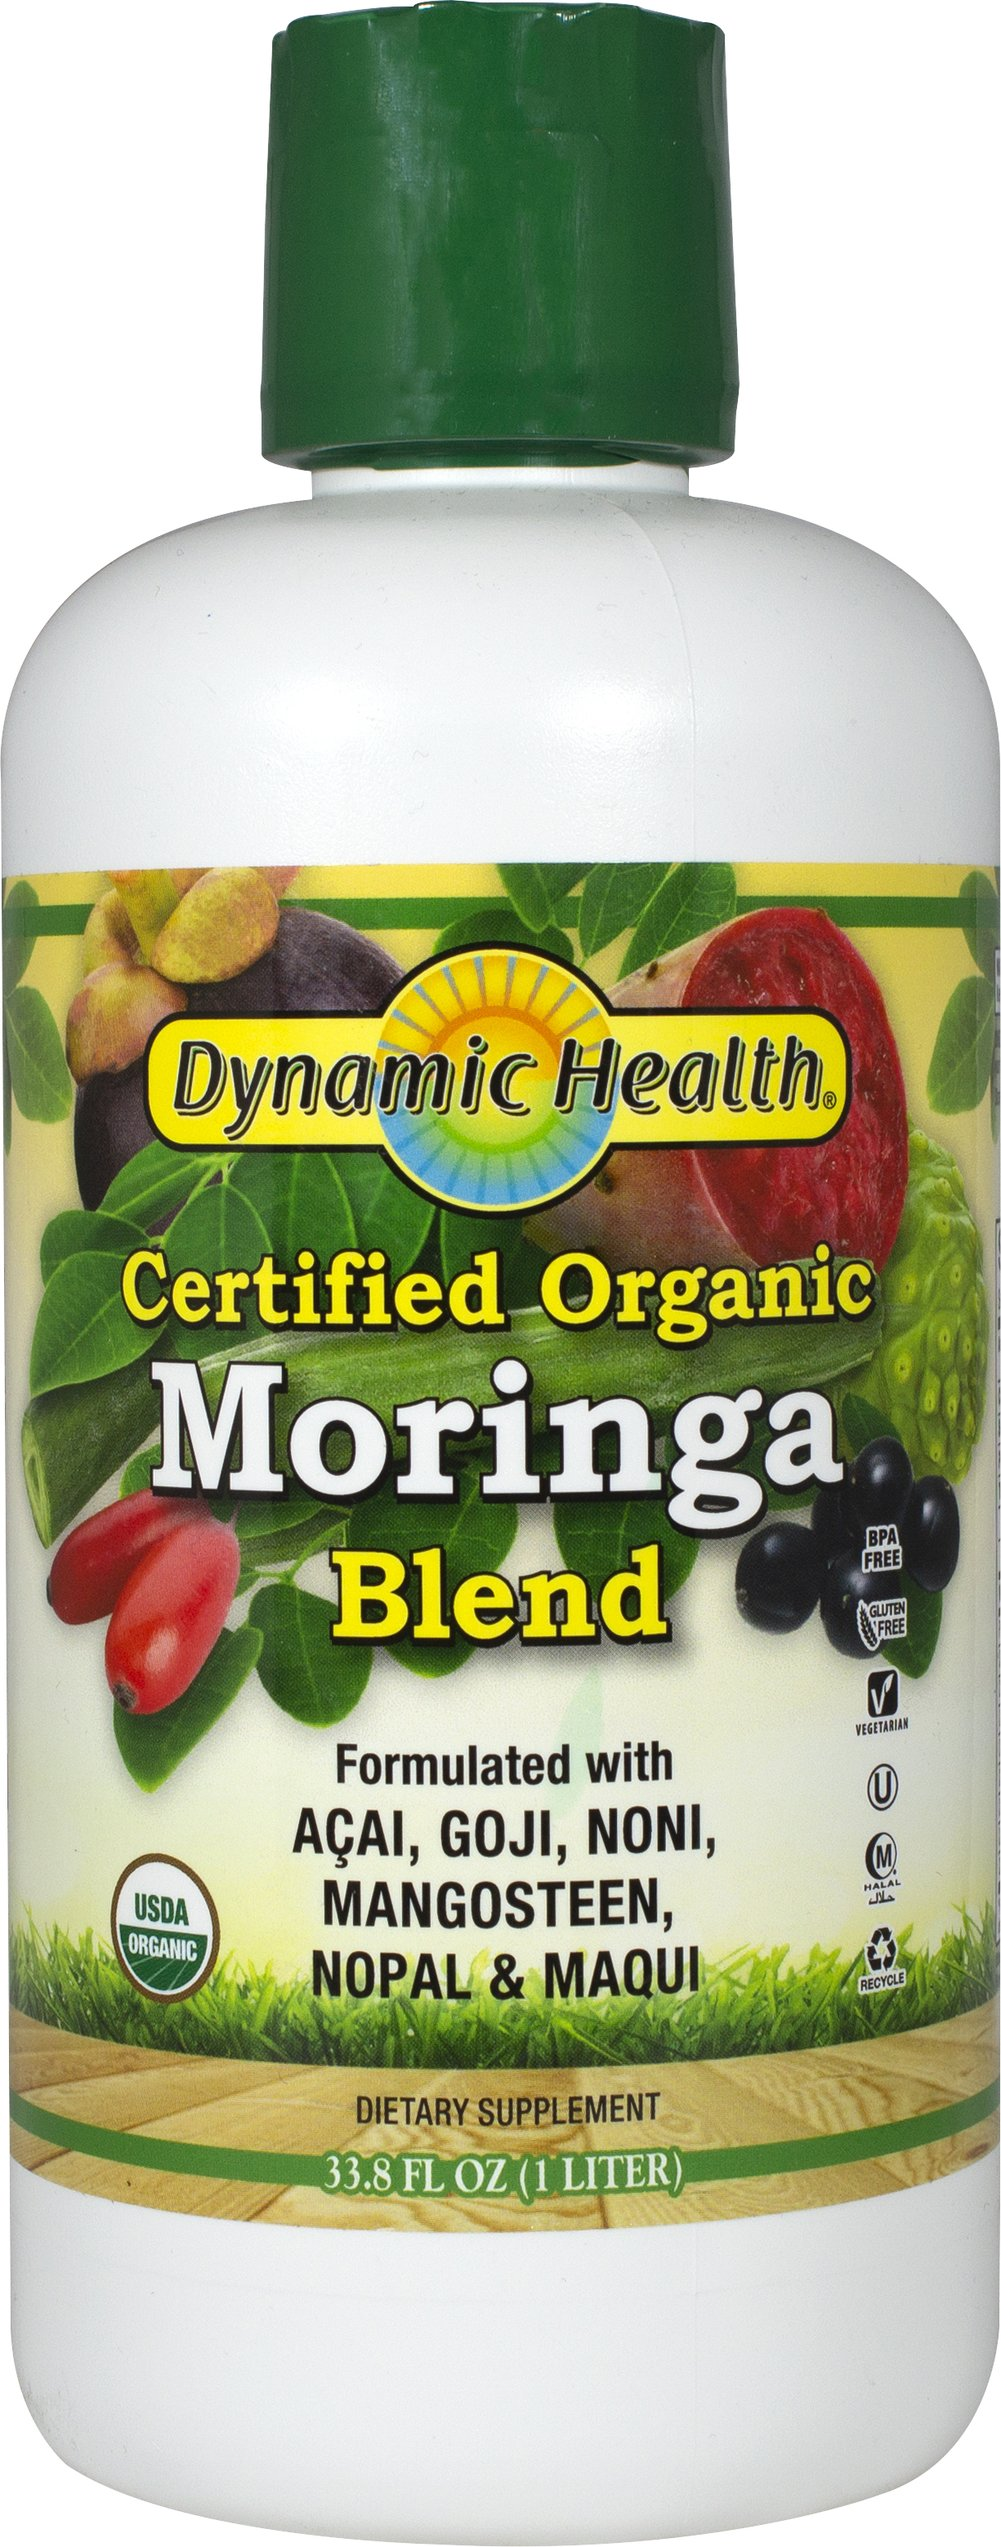 Organic Moringa Juice Blend <p><strong>From the Manufacturer's Label: </strong></p><p>Dynamic Health's Organic Moringa oleifera Juice Blend has natural energy boosting abilities.** The Moringa oleifera tree's leaves are nutrient dense in vitamins and minerals.** It is a tonic for good overall health.*</p><p>The antioxidant rich elixir offers the synergy of Certified Organic Maqui, Acai, Goji, Noni, Mangosteen and Nopal to promote healthy livi